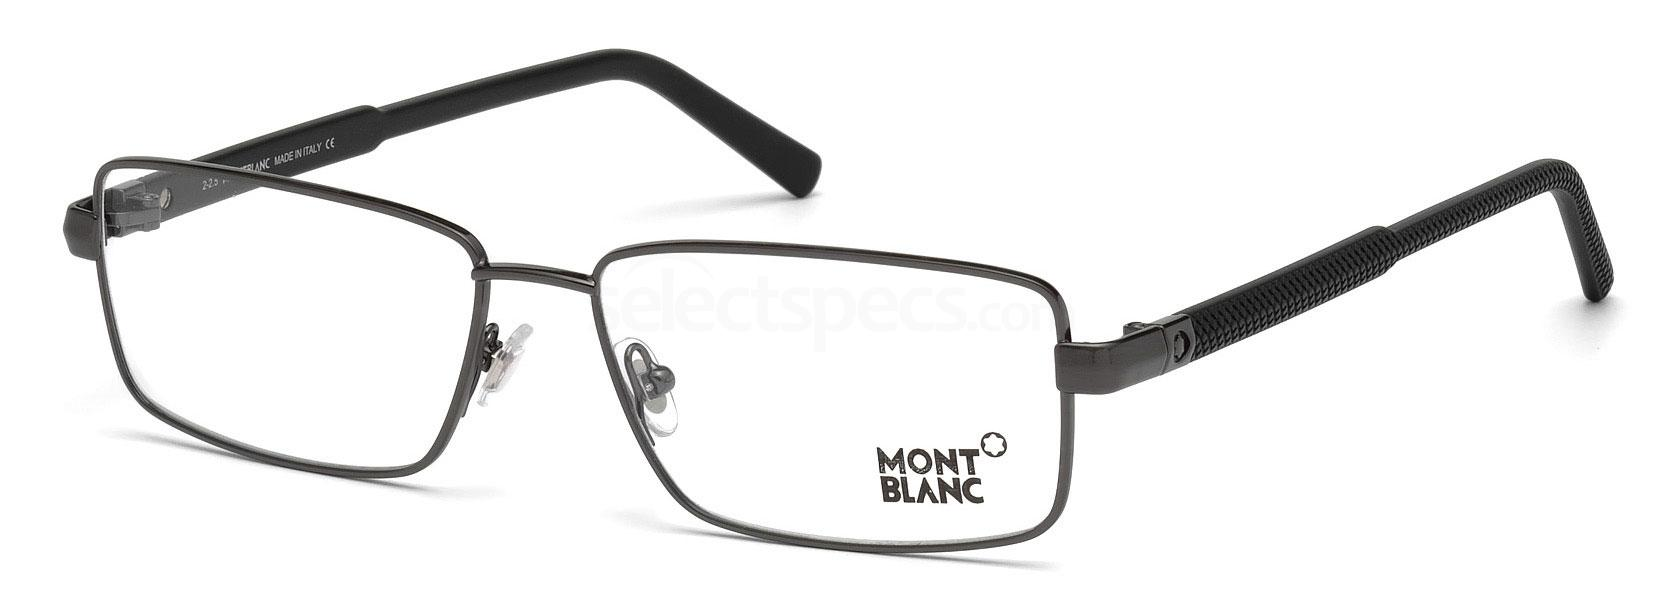 008 MB0629 Glasses, Mont Blanc